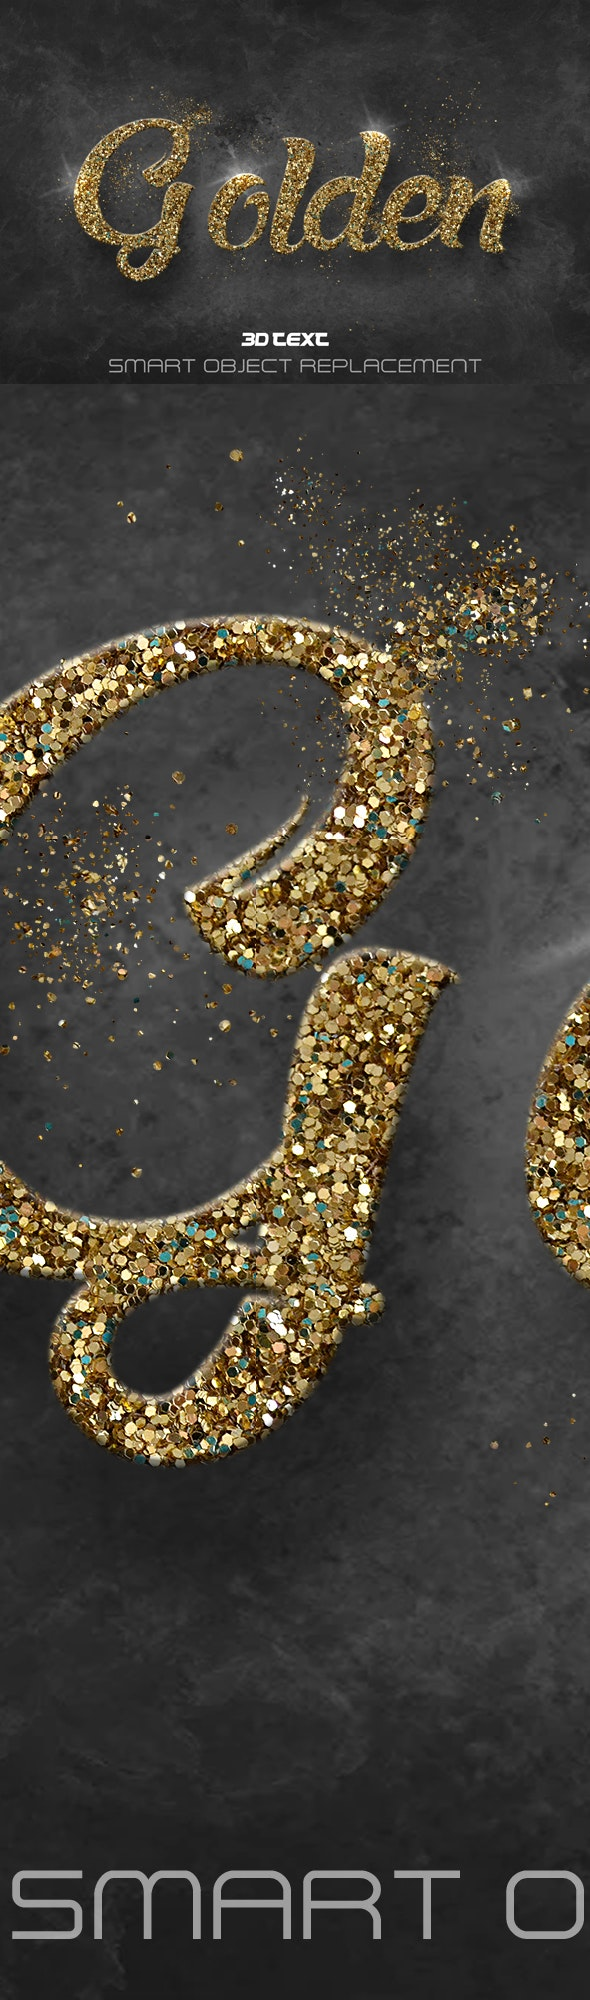 Gold Text Effect Styles - Text Effects Styles